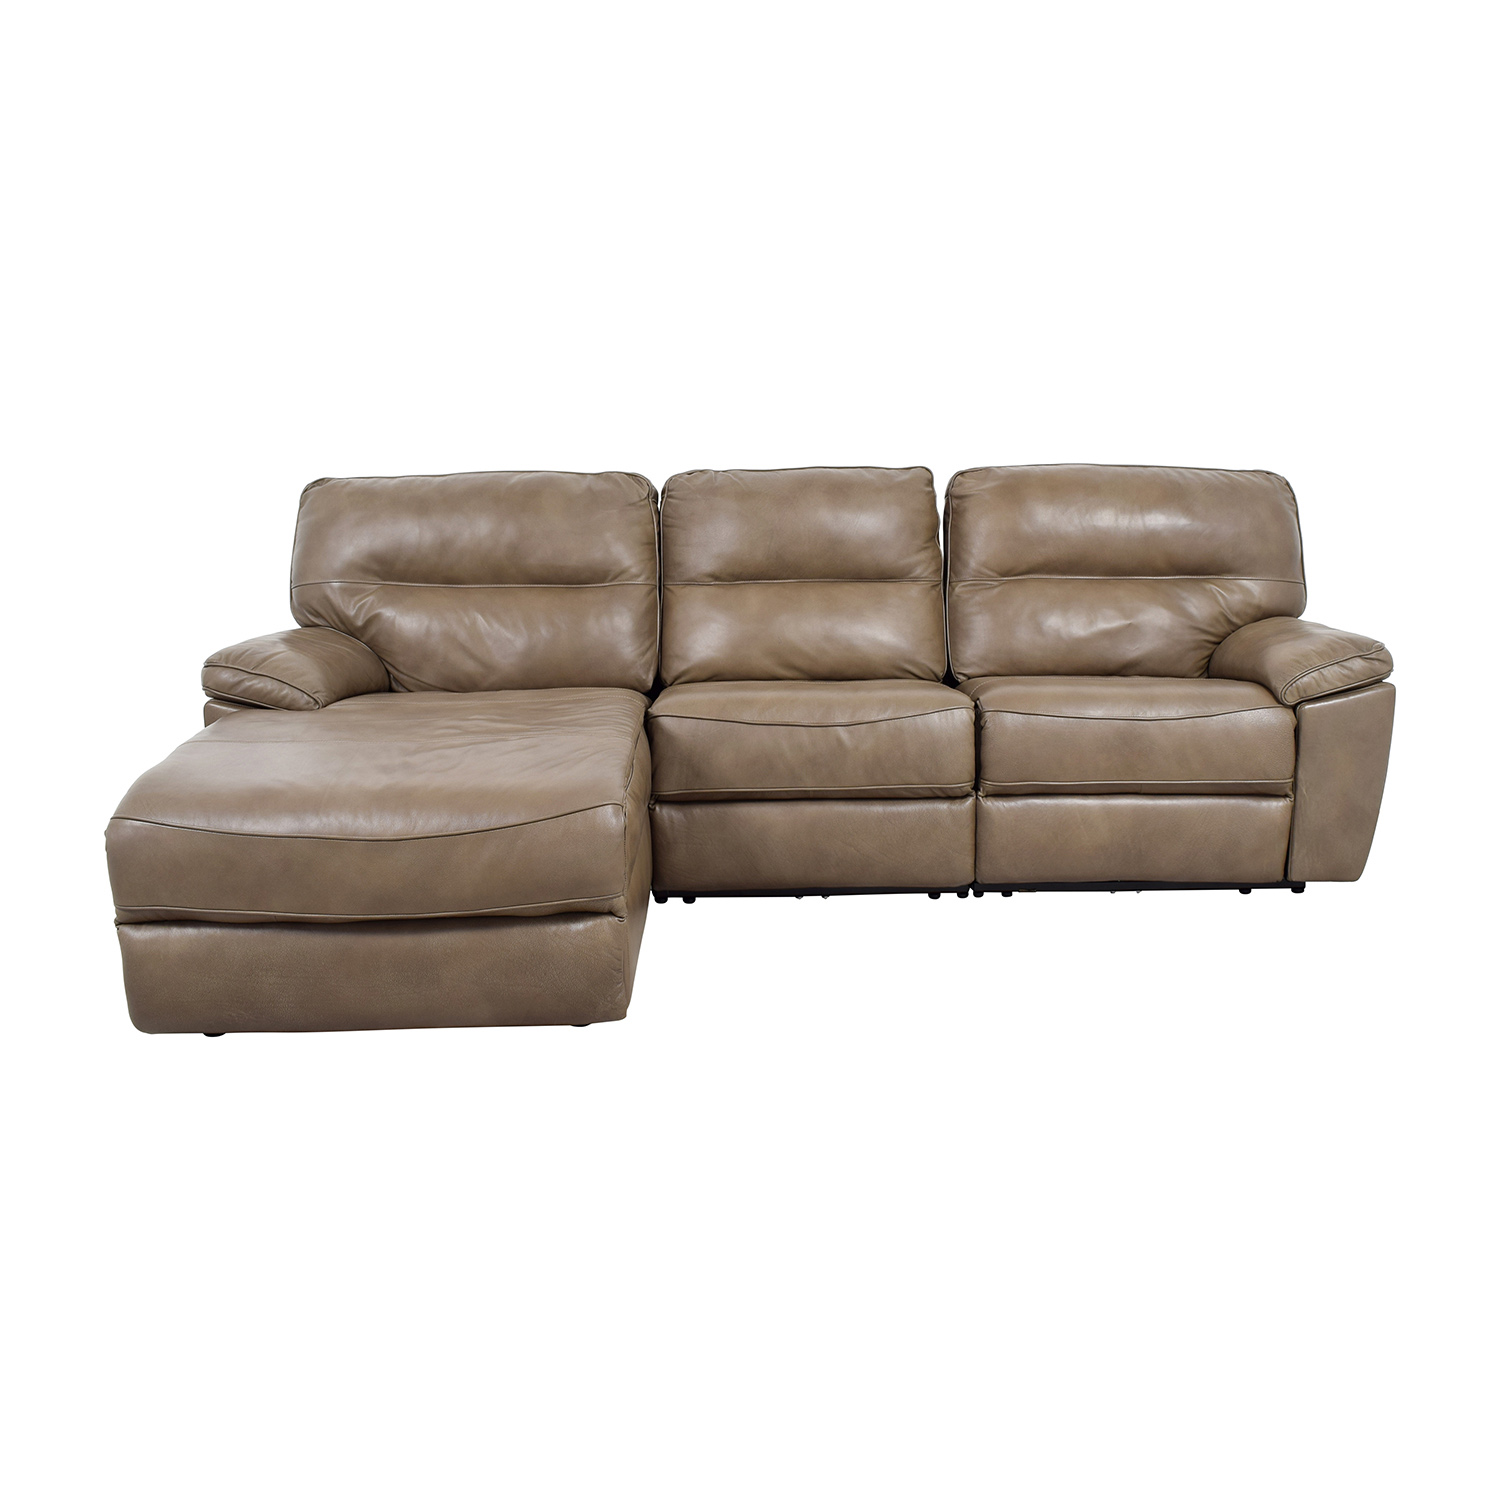 Leather chaise lounge best leather chaise lounge chair for Chaise leather lounges